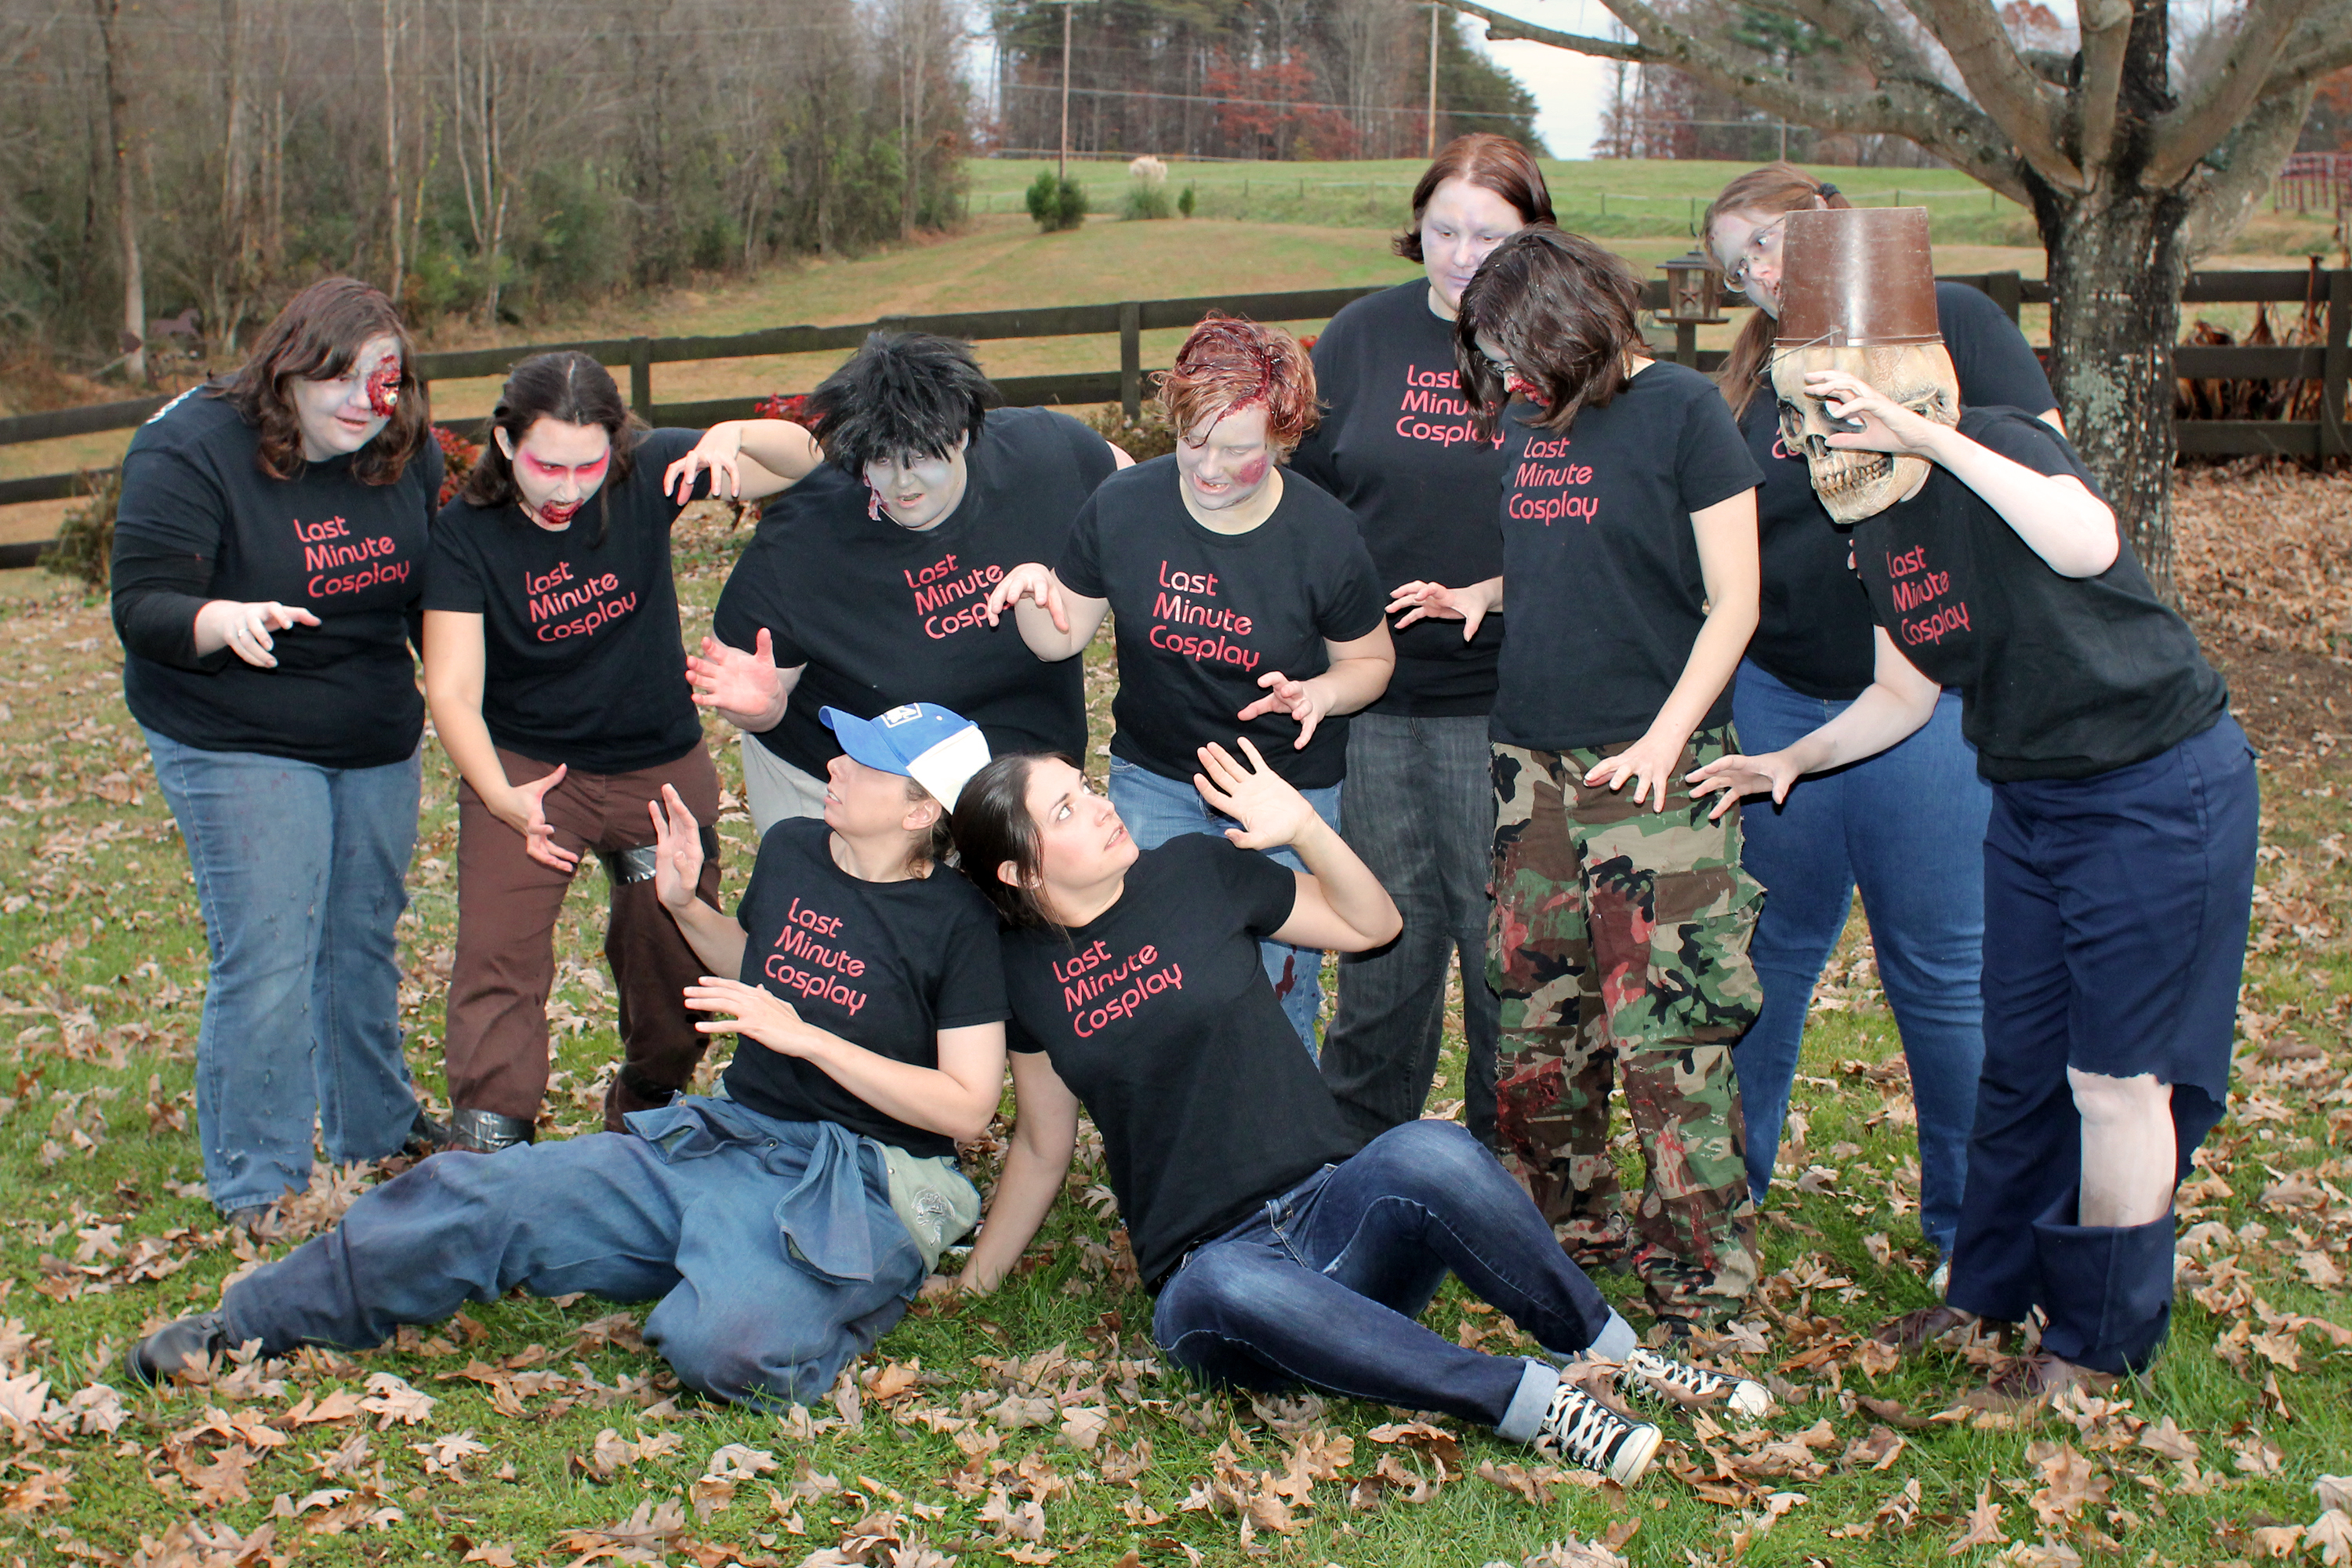 Custom T Shirts For Last Minute Cosplay Zombies Shirt Design Ideas